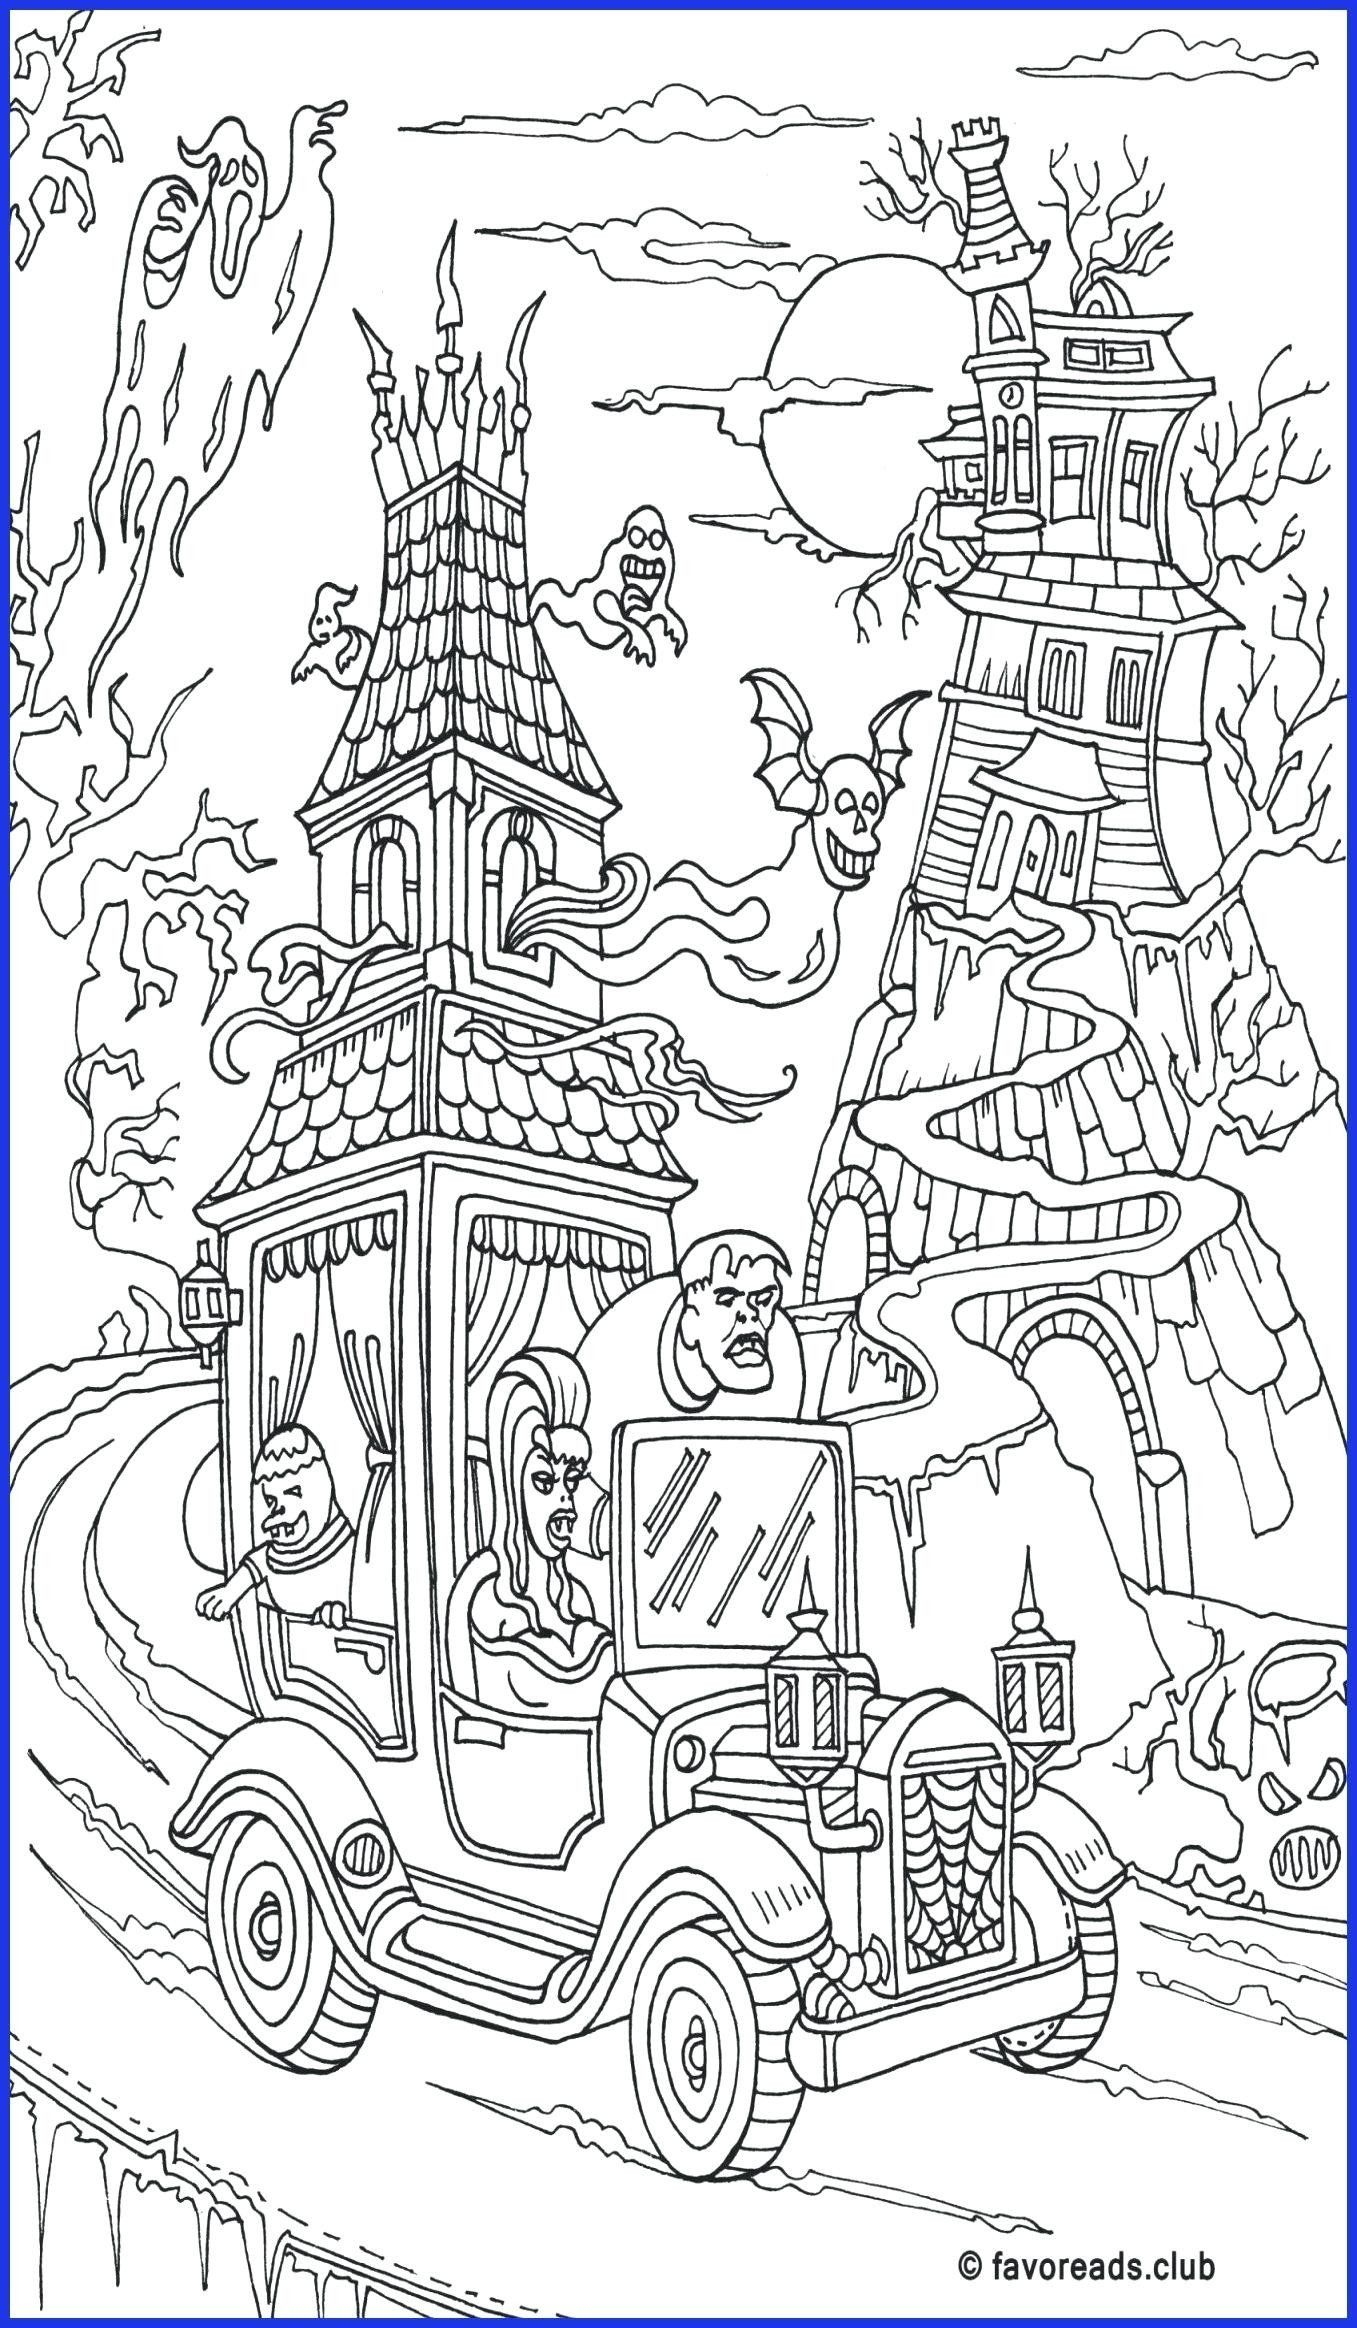 Blaze And The Monster Machines Coloring Pages New Coloring Pages House Coloring Book Animal Coloring Books Halloween Coloring Book Coloring Pages Inspirational